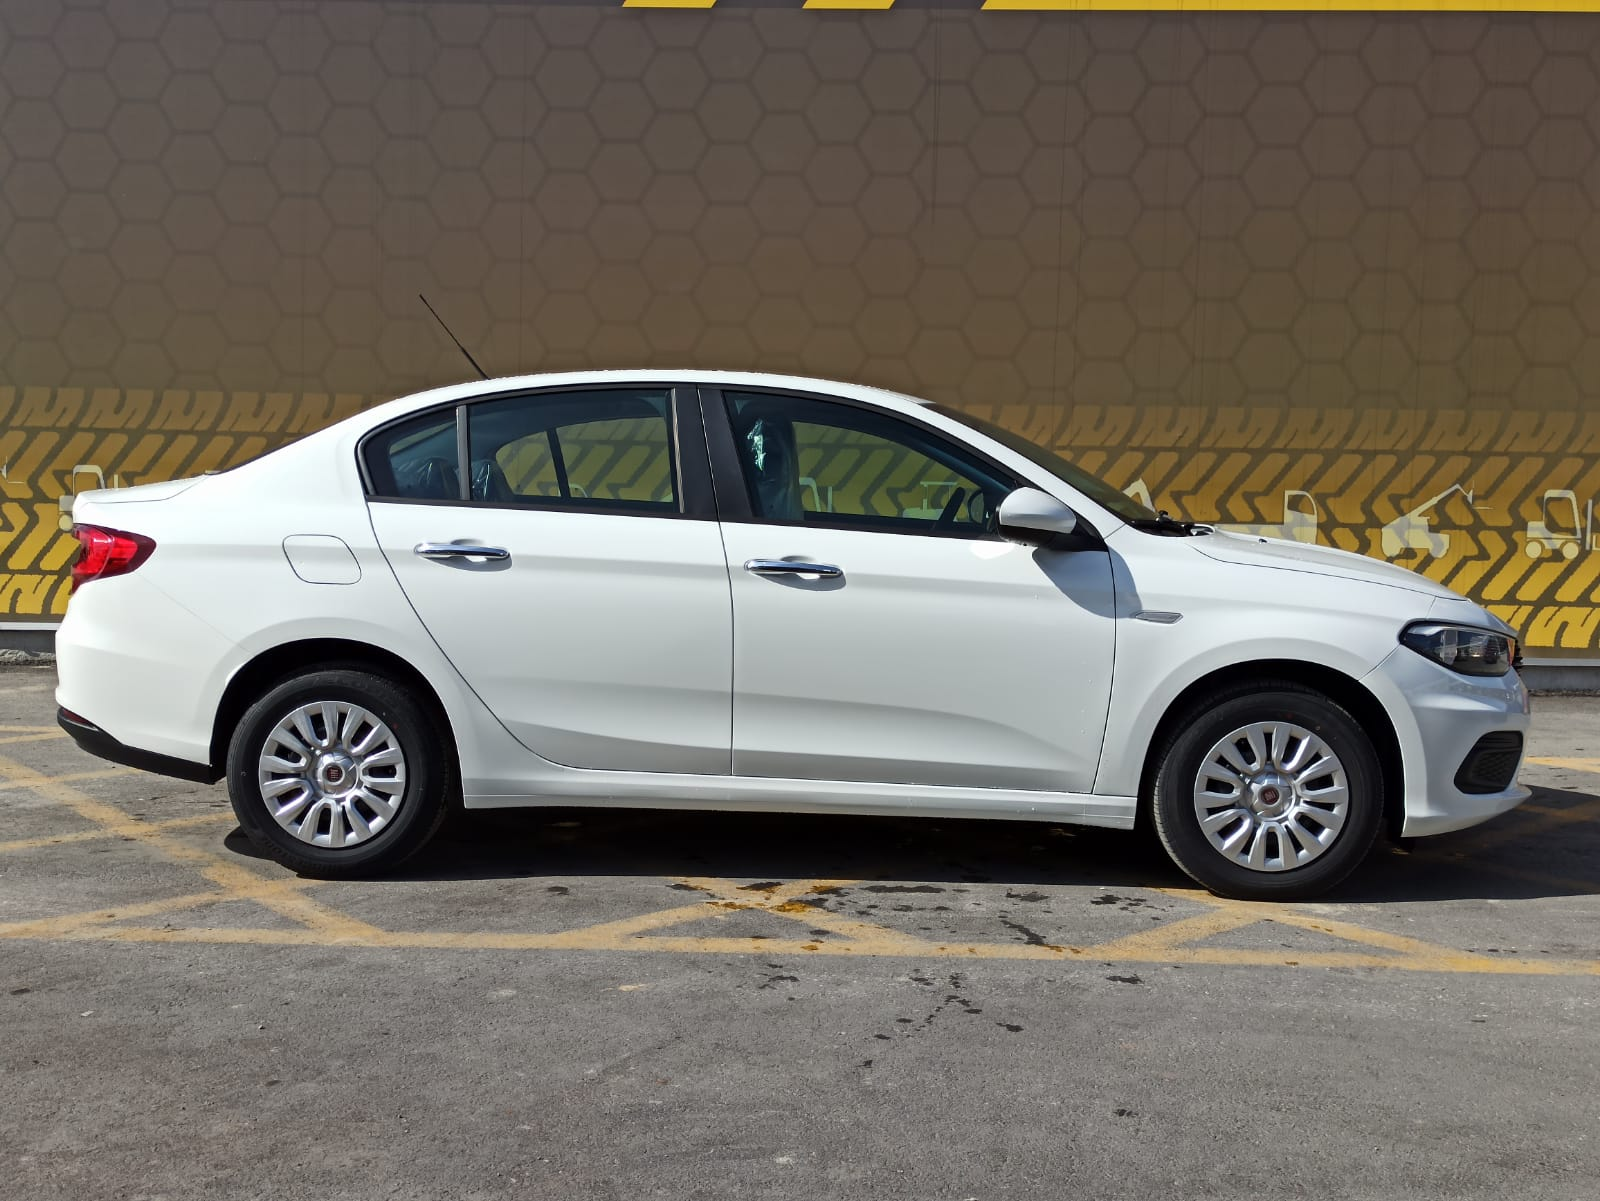 2020 MODEL FIAT EGEA 1.6Mjet OTOMATİK EASY  - Erçal Trucks